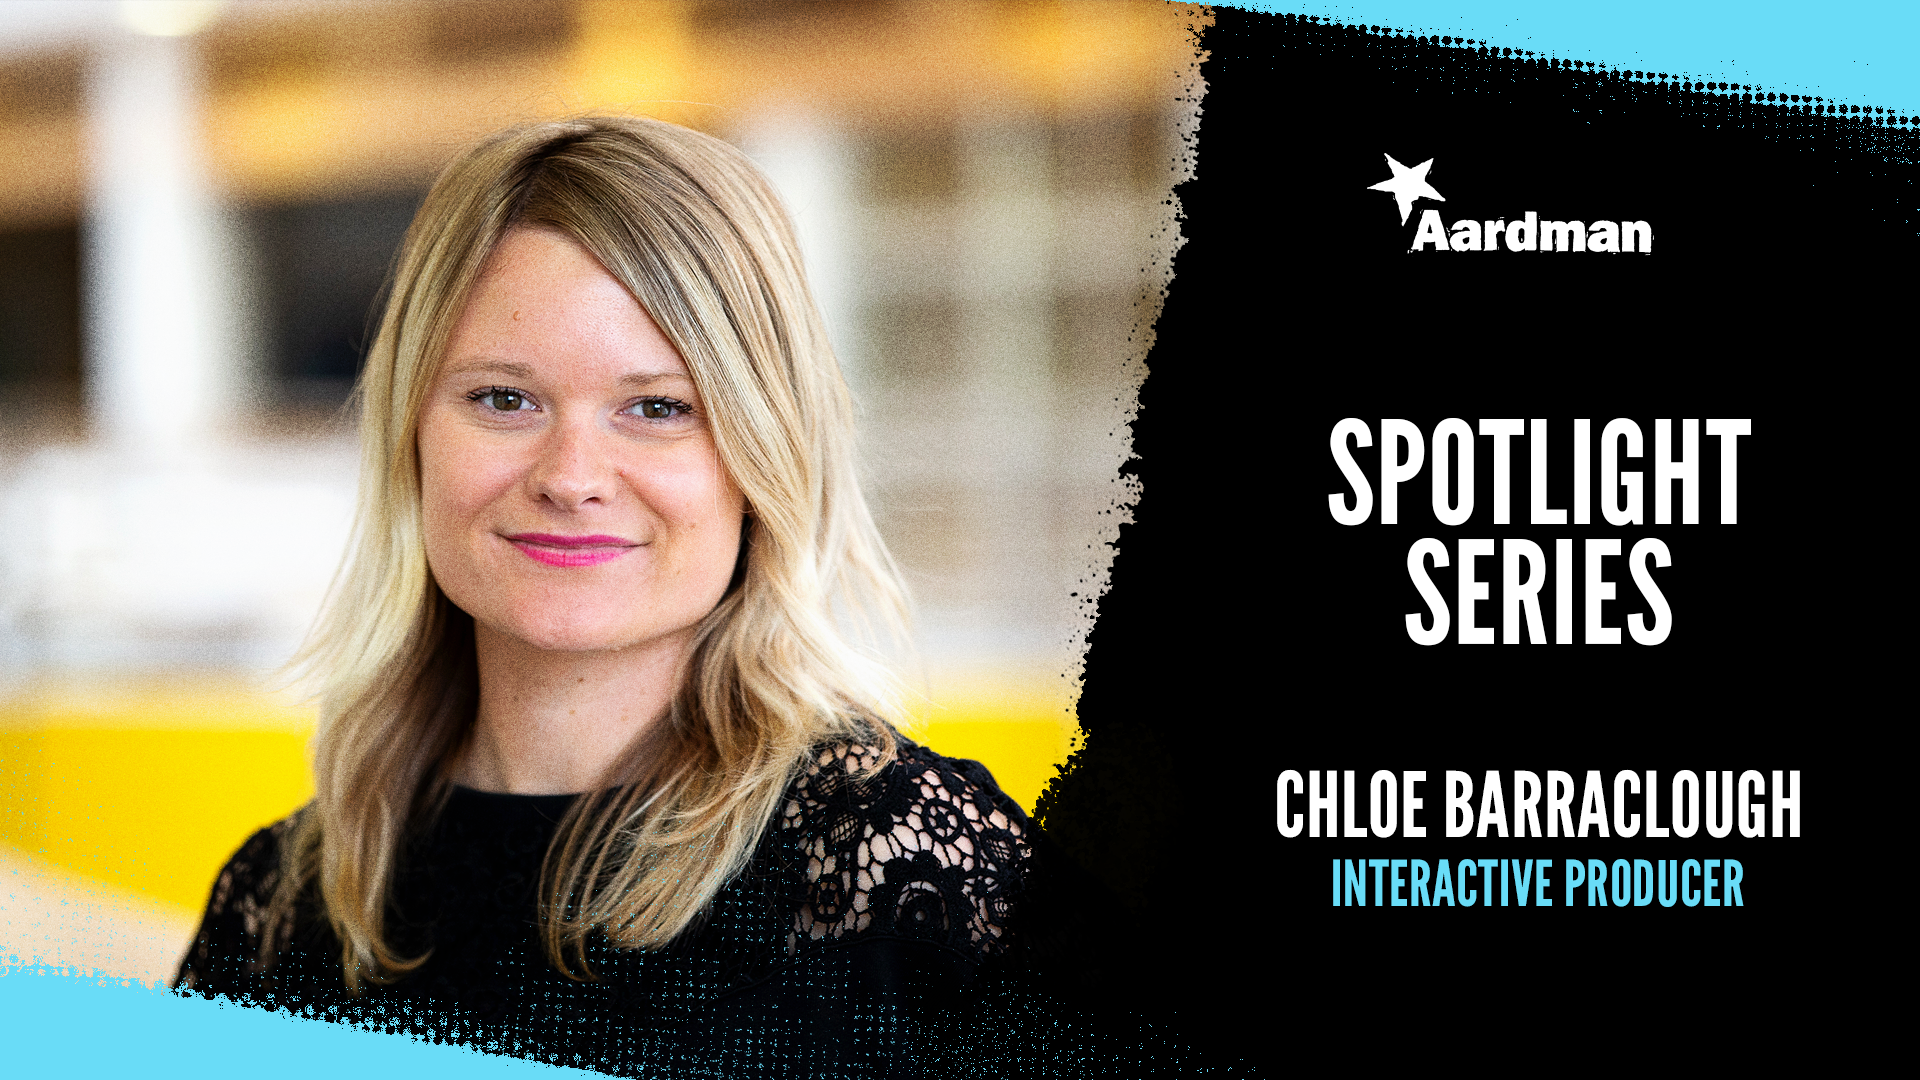 Chloe Barraclough Interactive Producer